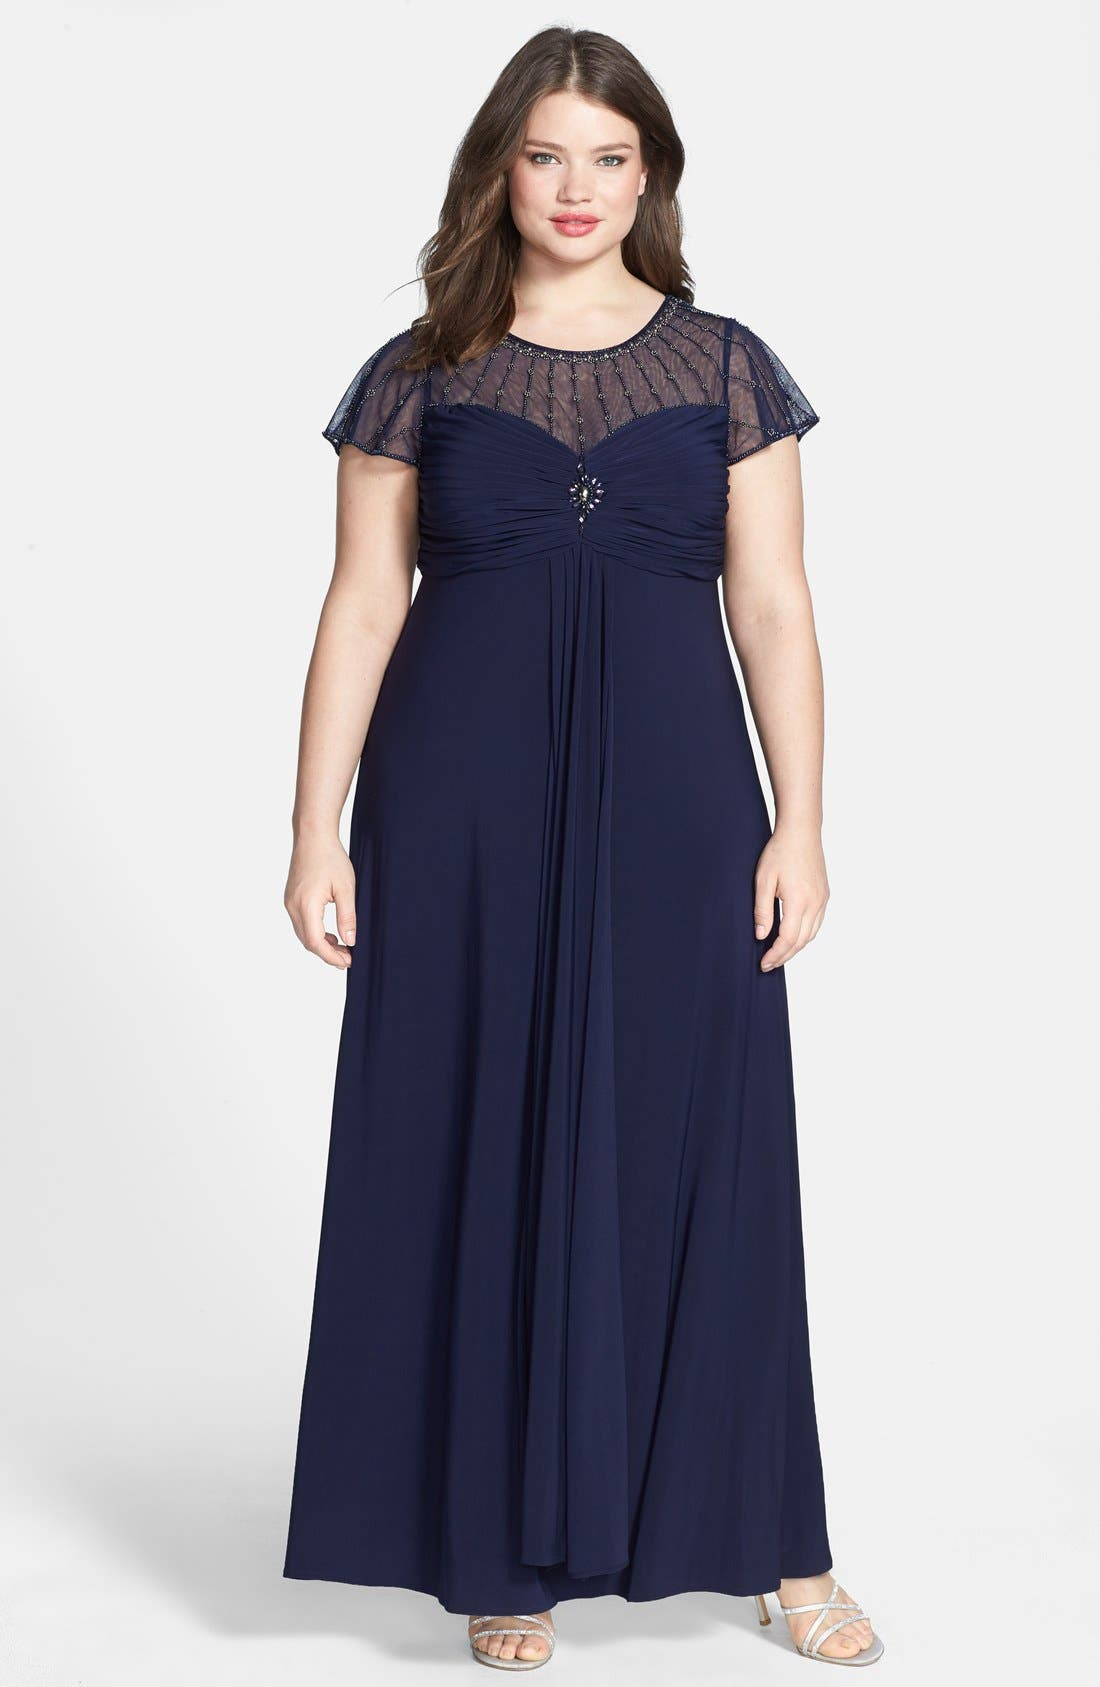 Main Image - Patra Beaded Illusion Top Matte Jersey Gown (Plus Size)